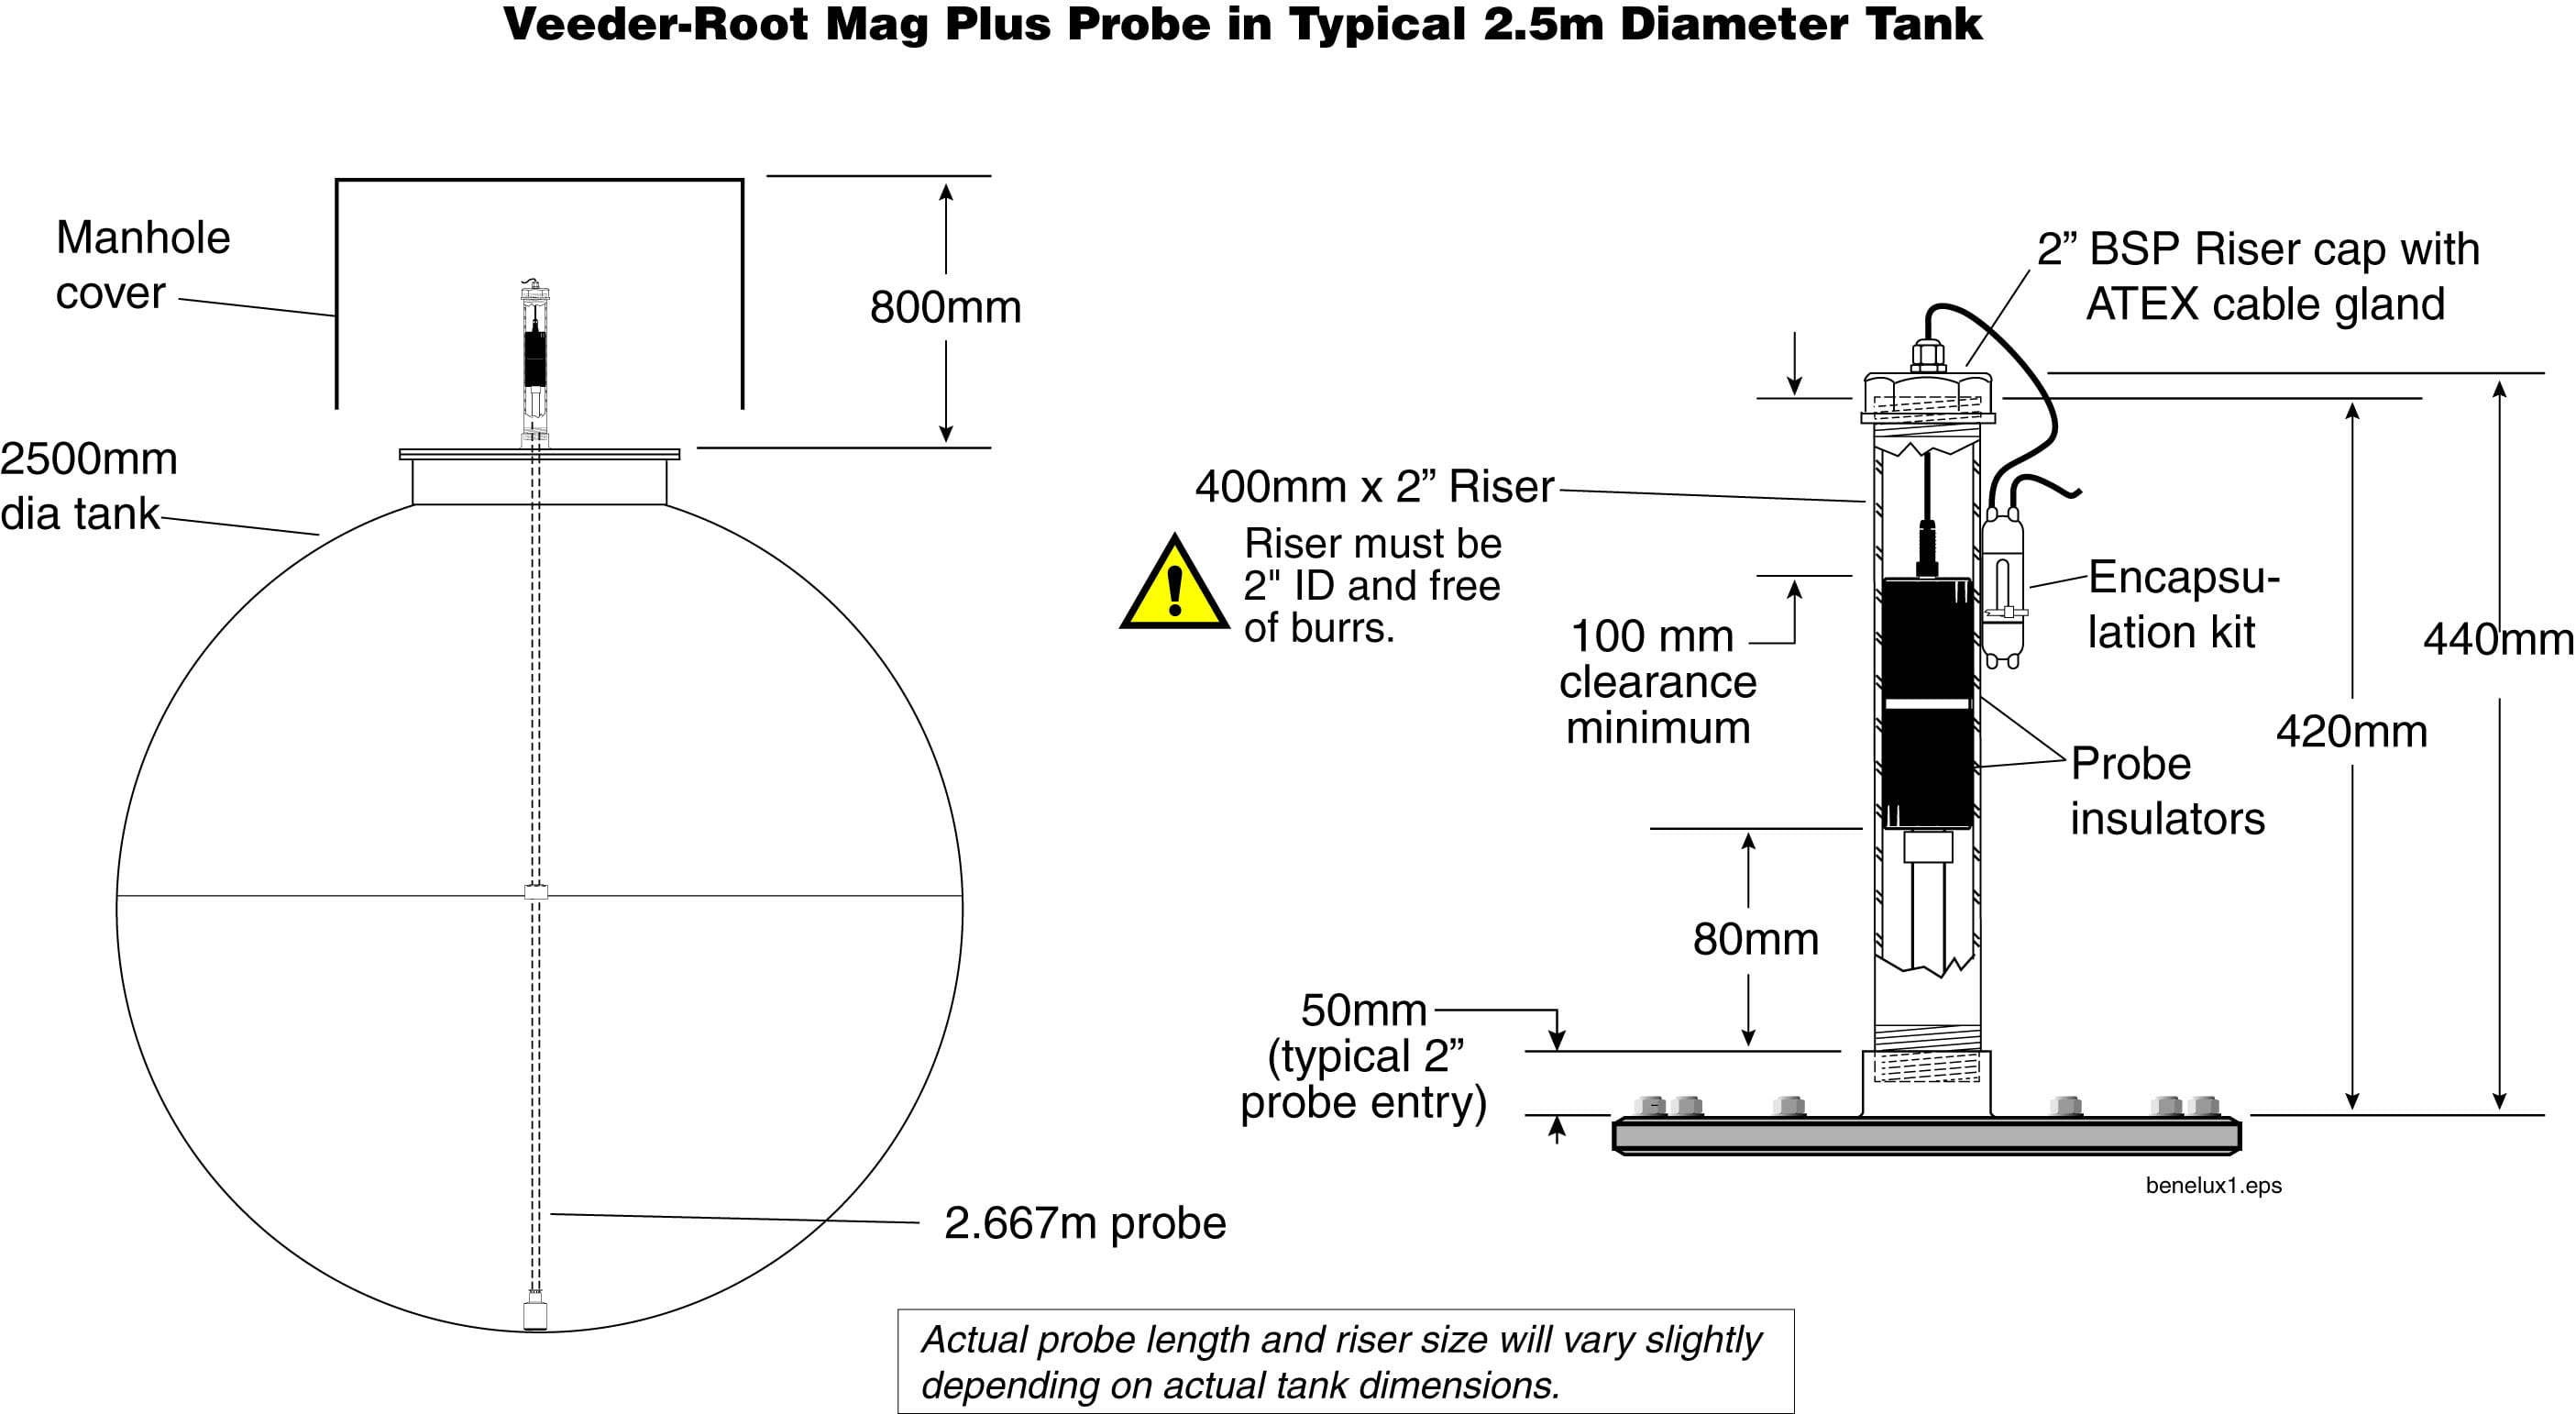 Veeder Root 4' Mag Plus Probe with 0.1 In-Tank Leak Detection on